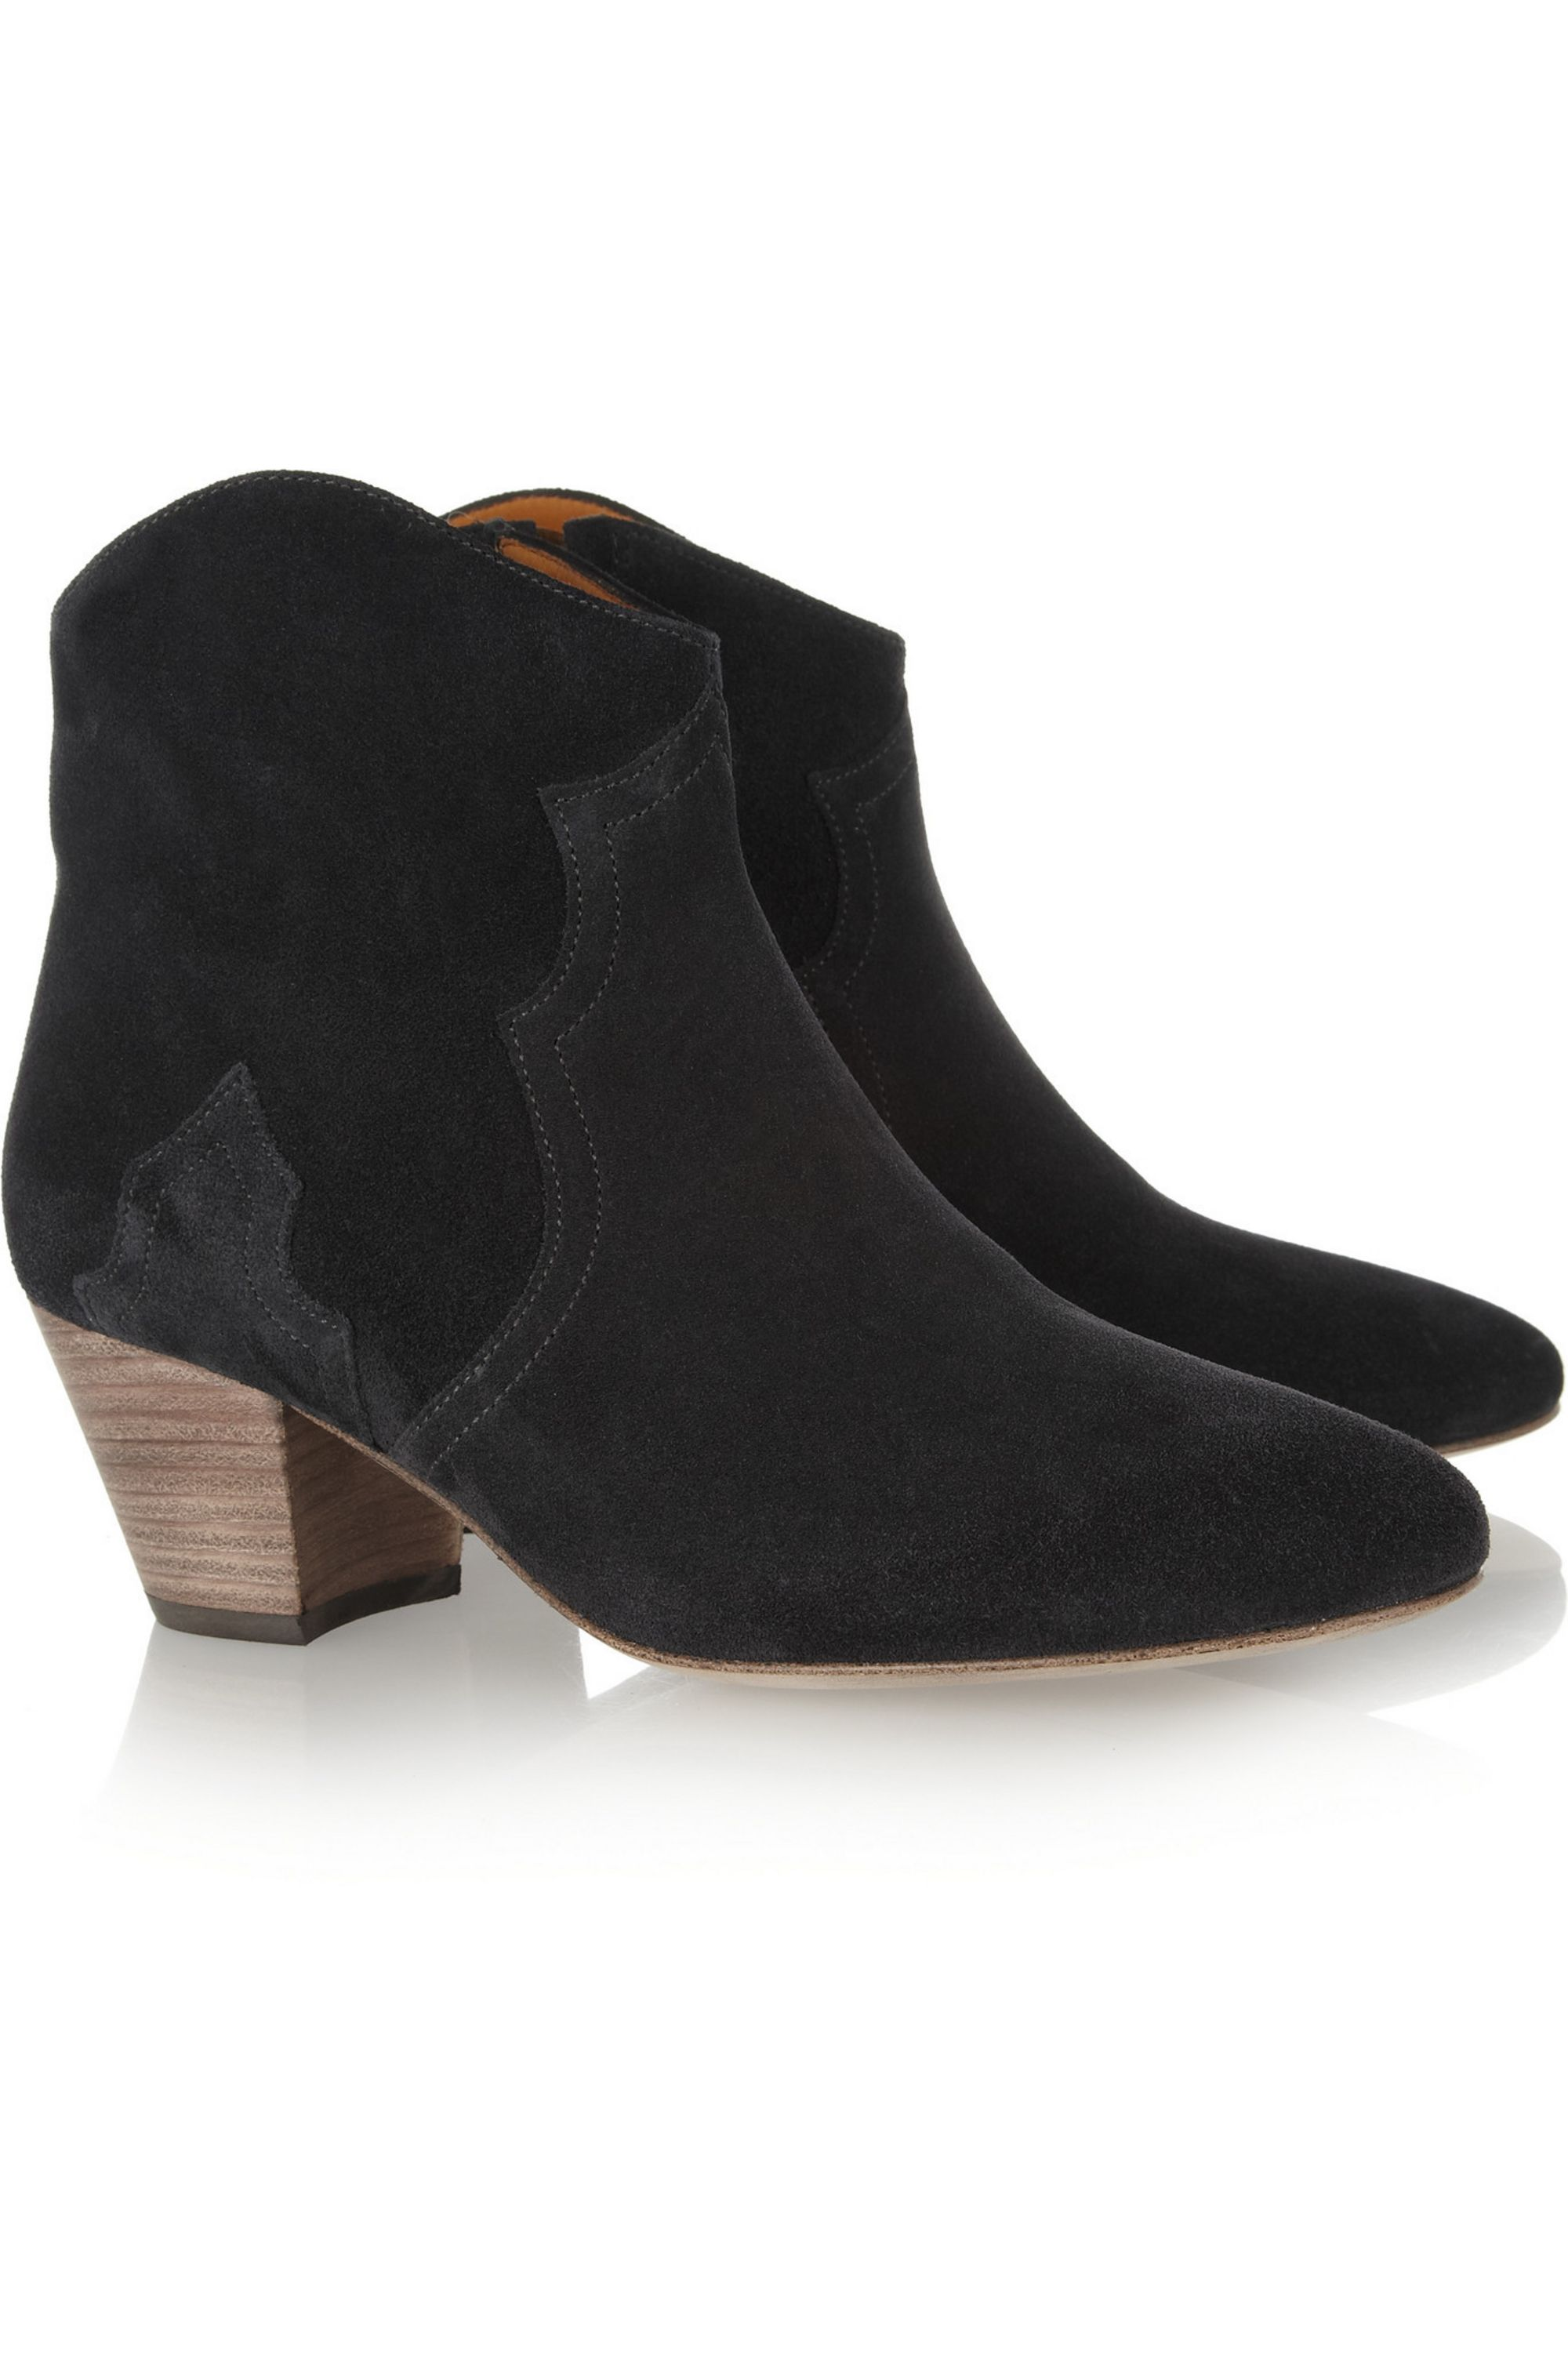 Isabel Marant The Dicker suede ankle boots